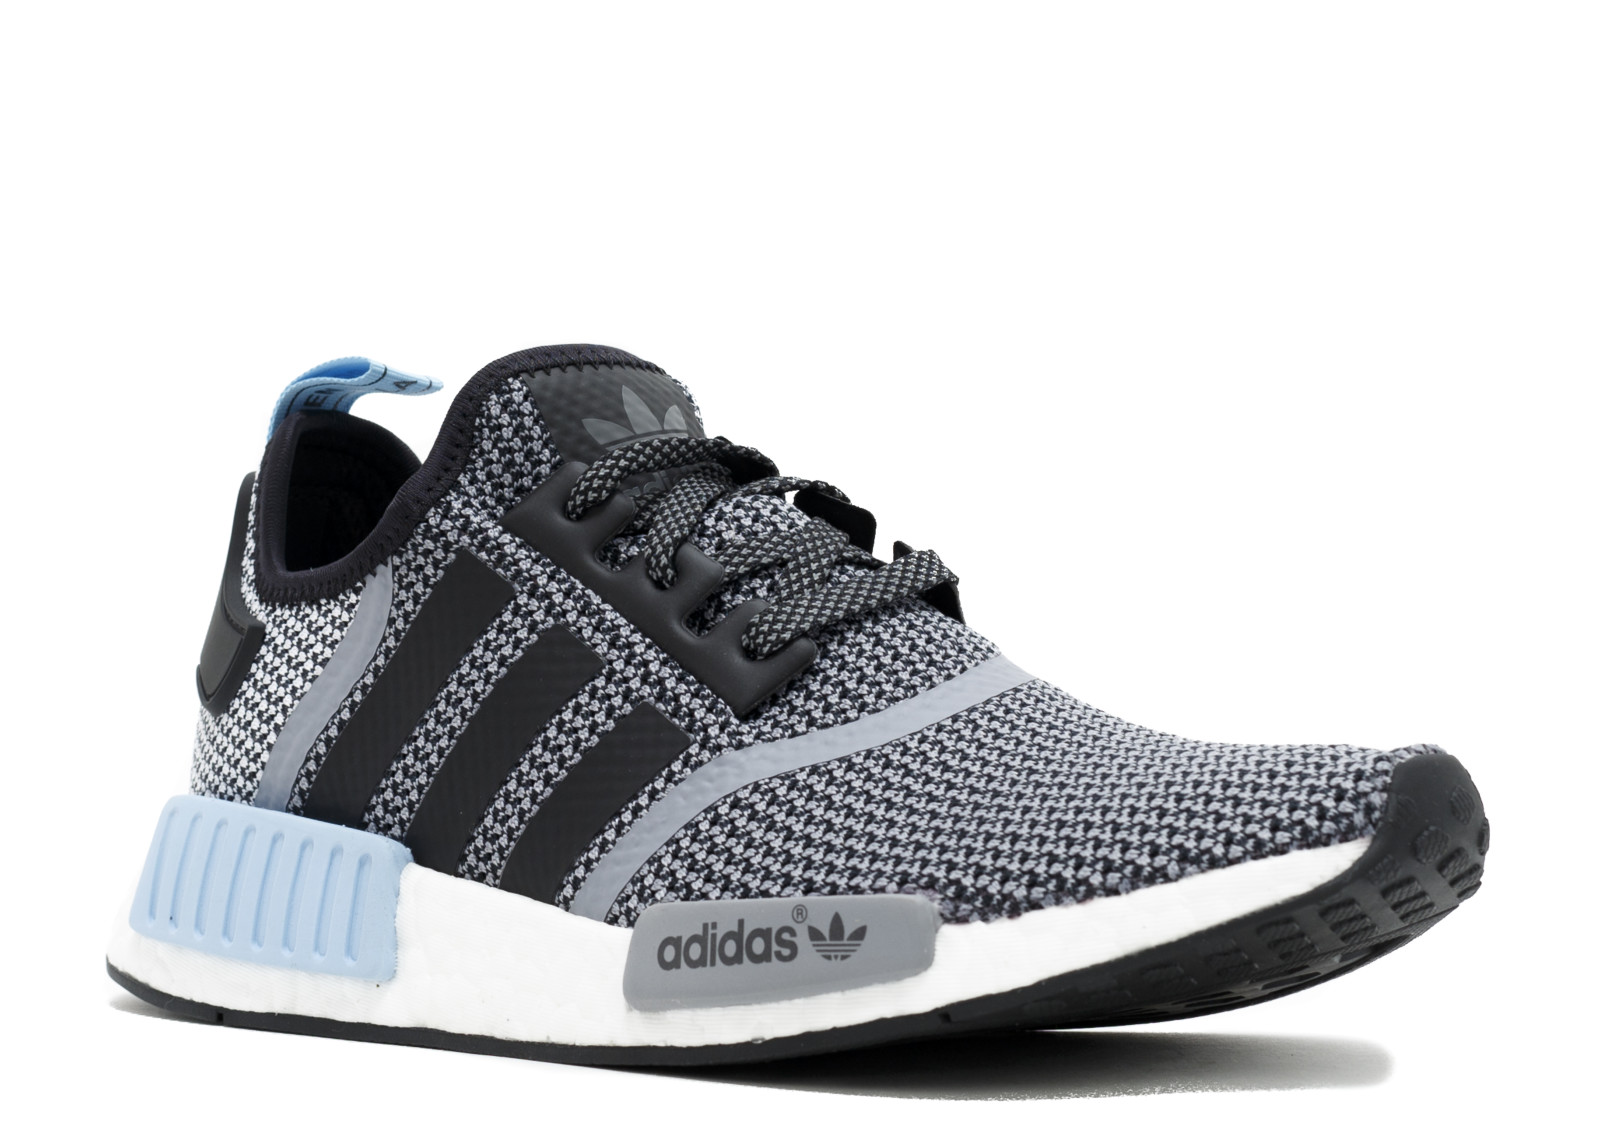 c75b71012 Adidas NMD R1 CLEAR BLUE — the curated goods